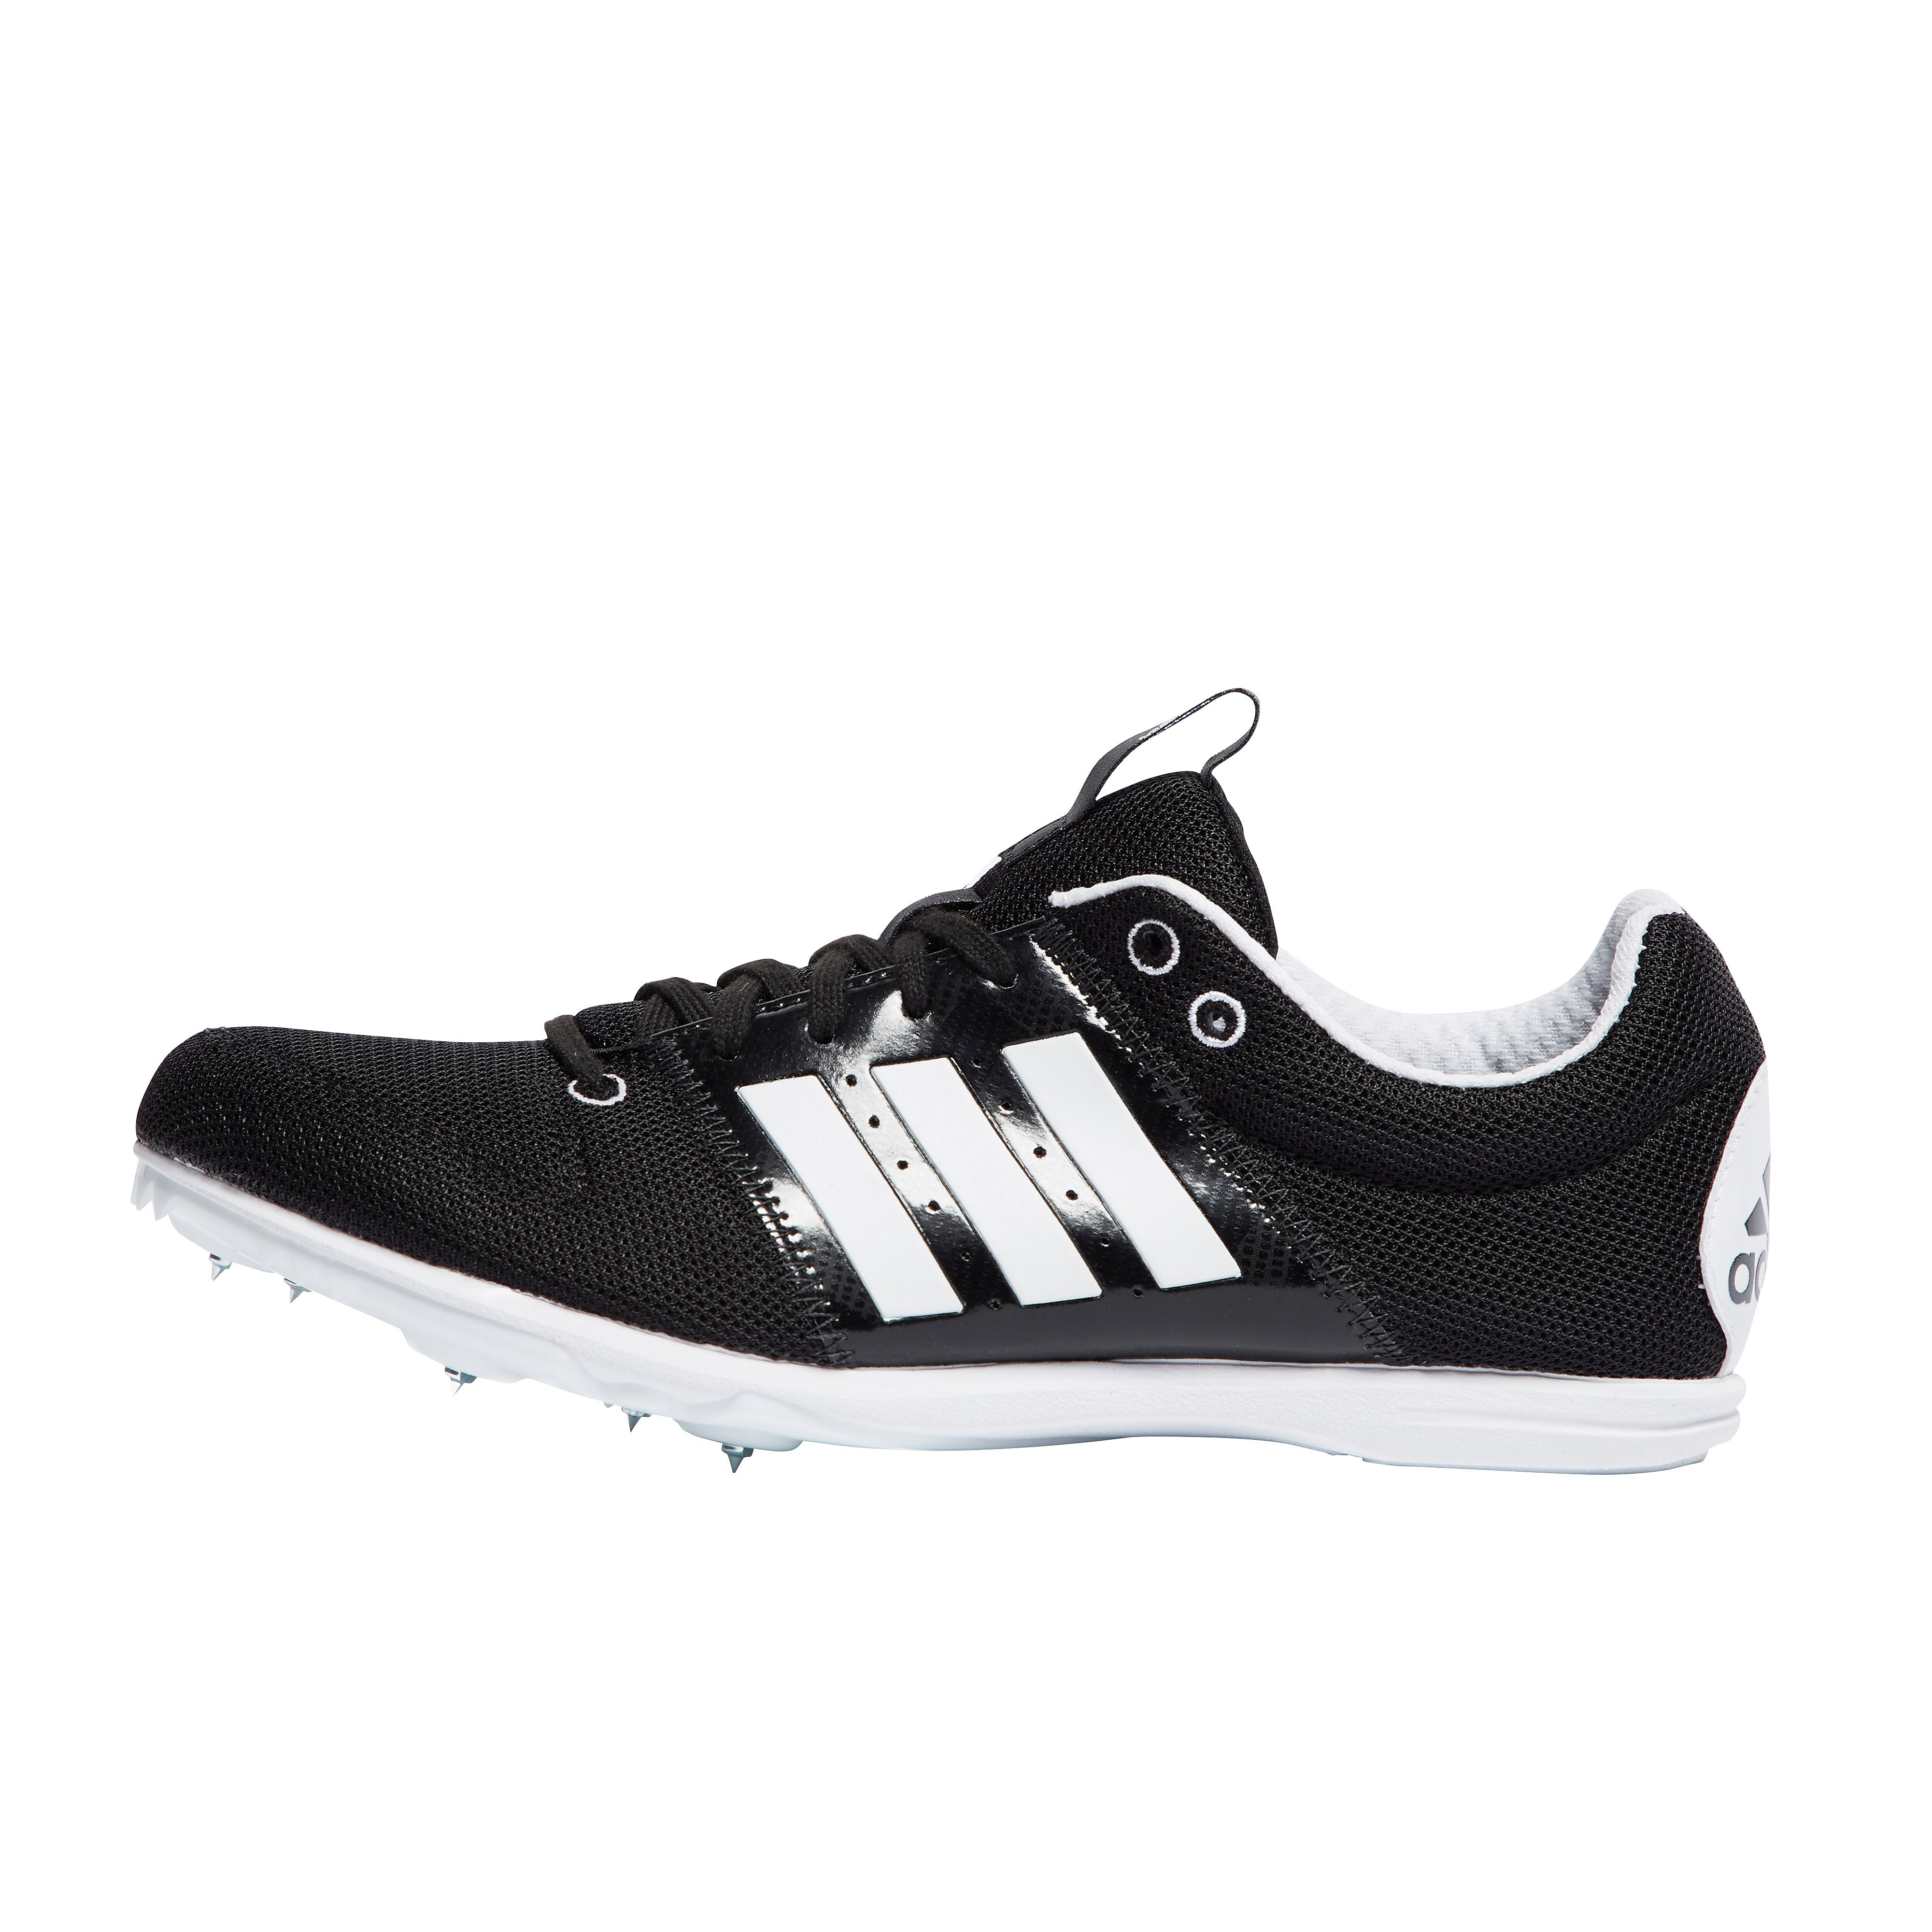 adidas Allroundstar Spikes Junior Shoes